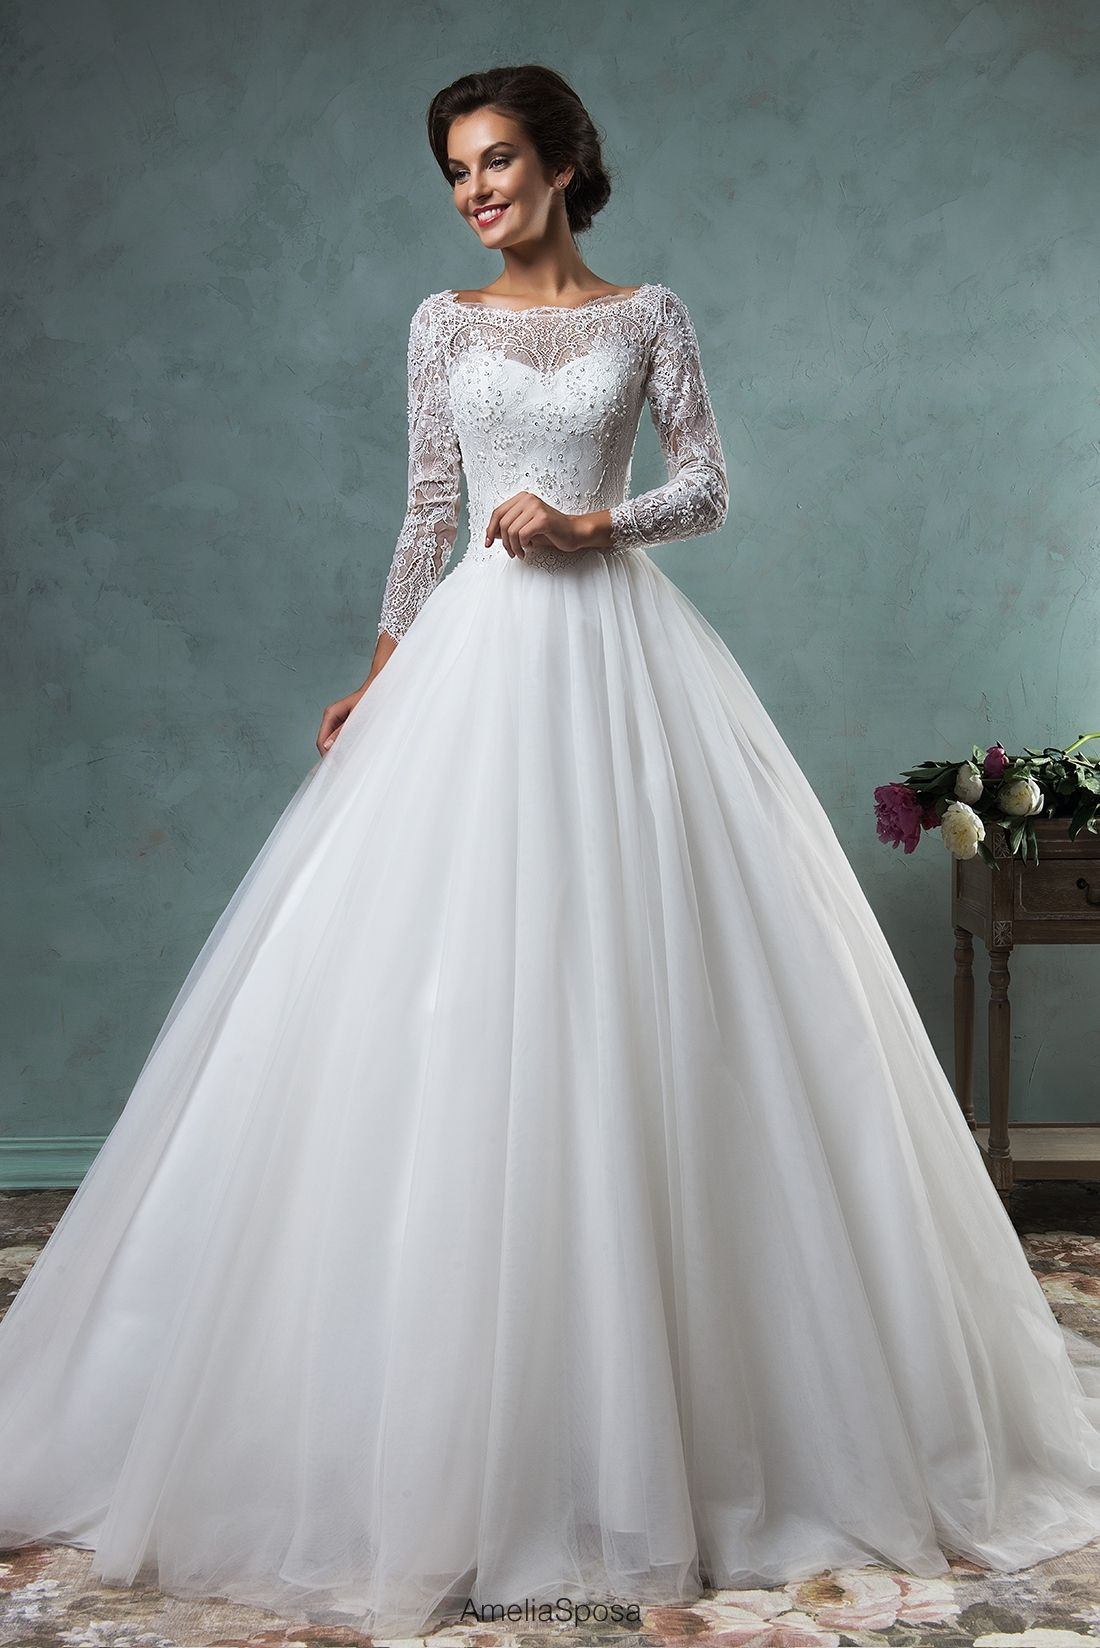 This special elegant wedding dress made of lace and tulle, it comes ...